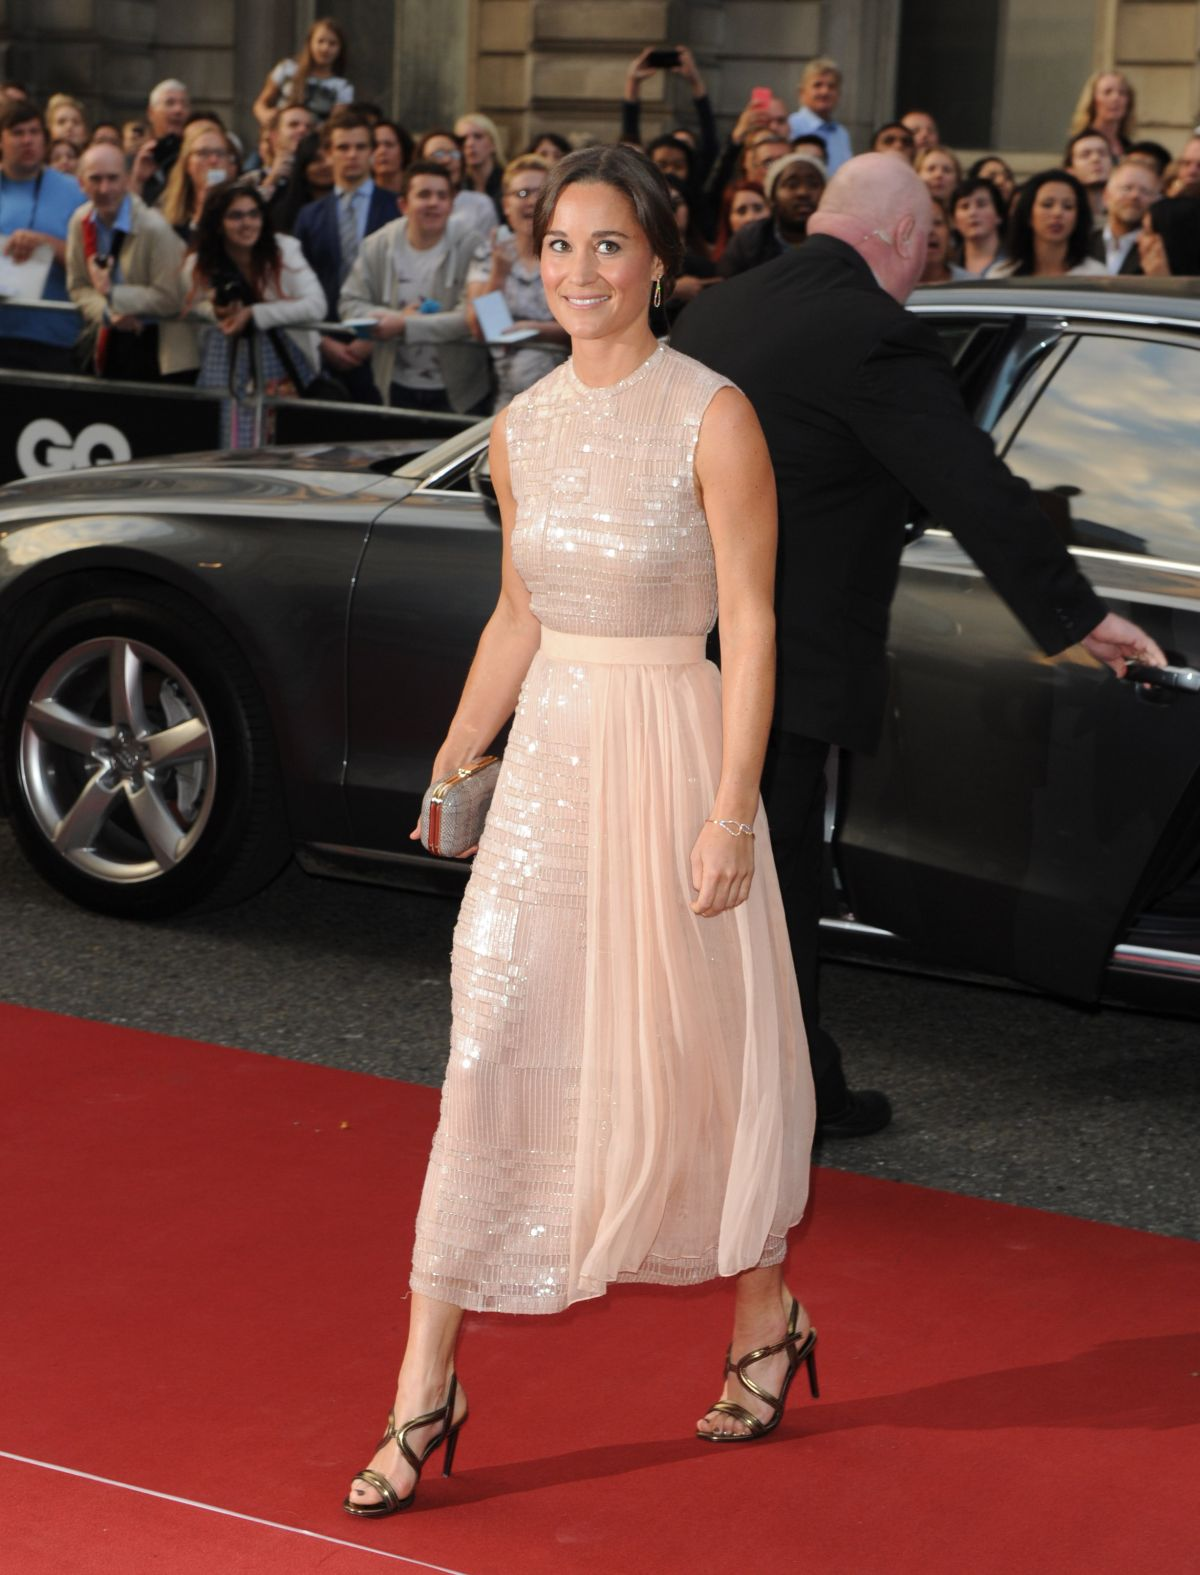 PIPPA MIDDLETON at 2014 GQ Men of the Year Awards in London